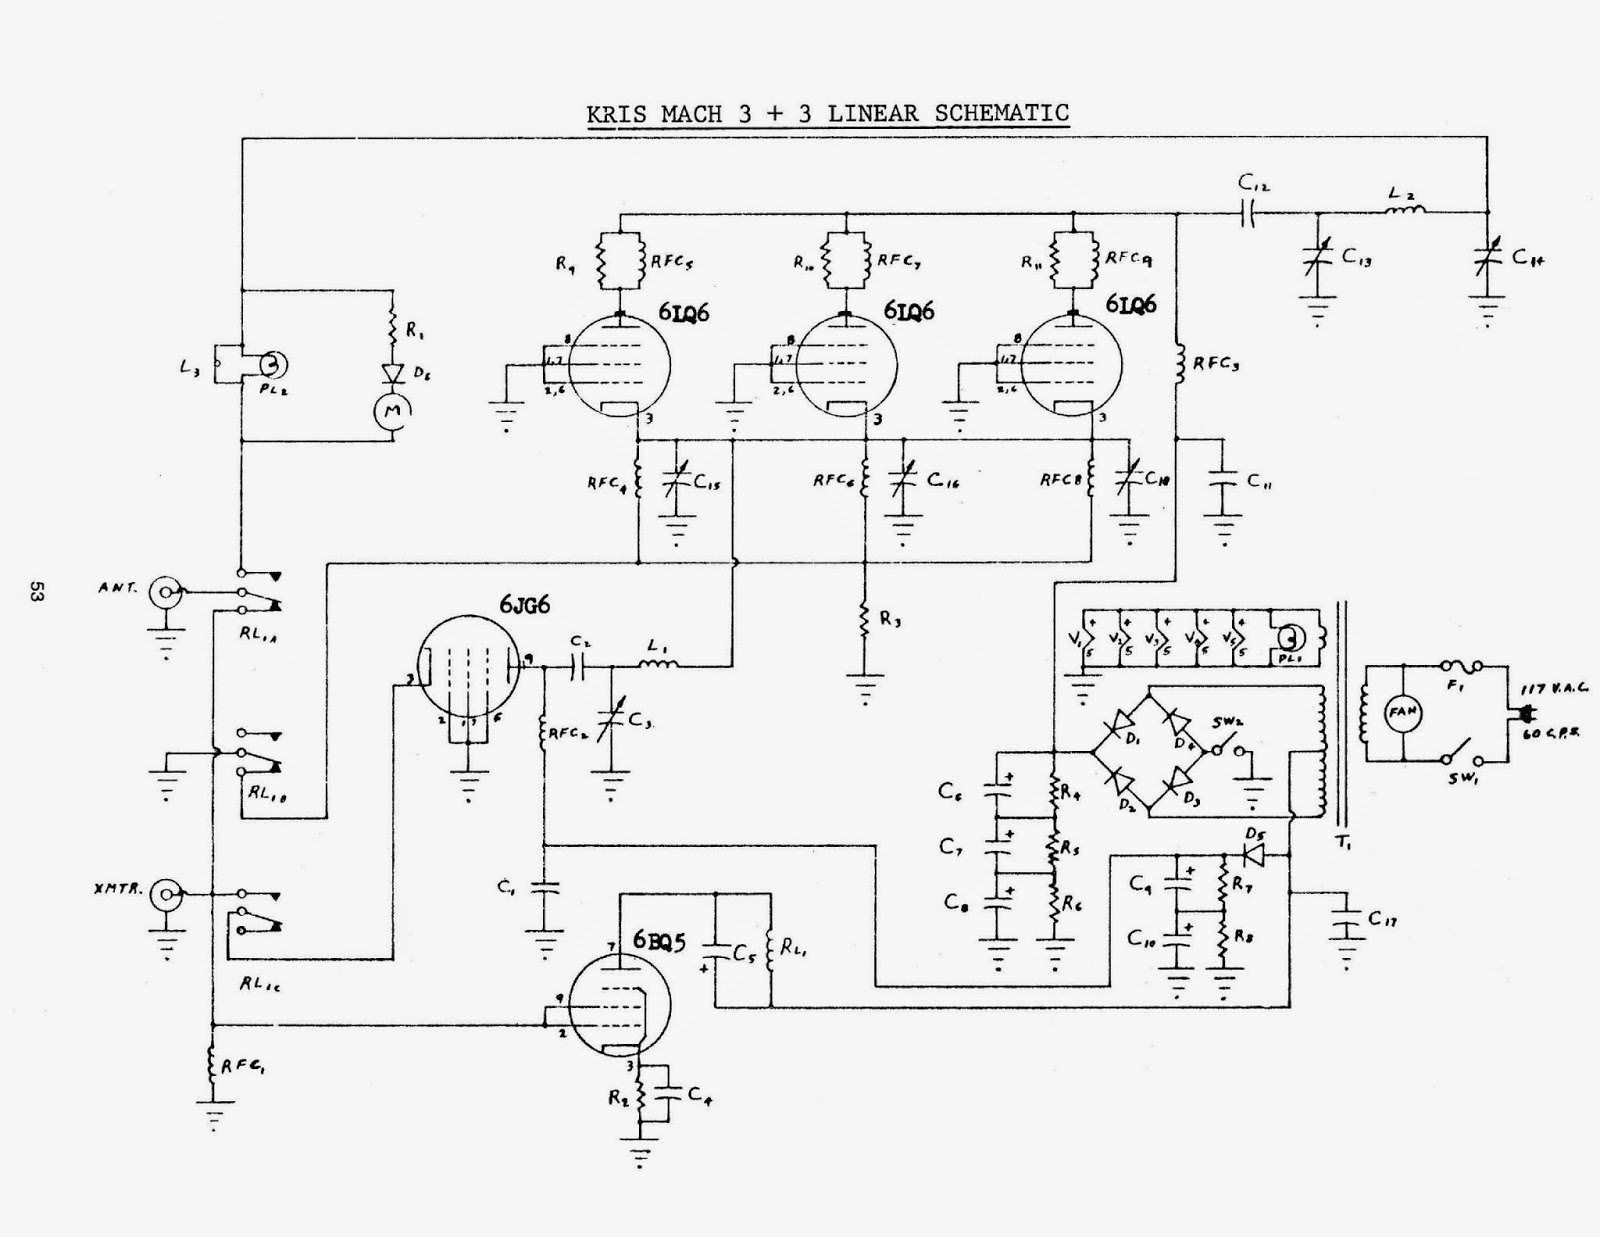 Cb Radio Linear Amp Schematic Circuit Wiring And Diagram Hub 27mhz Receiver 91nr712 Amplifier Rh Blogspot Com Palomar Amplifiers For Radios Home